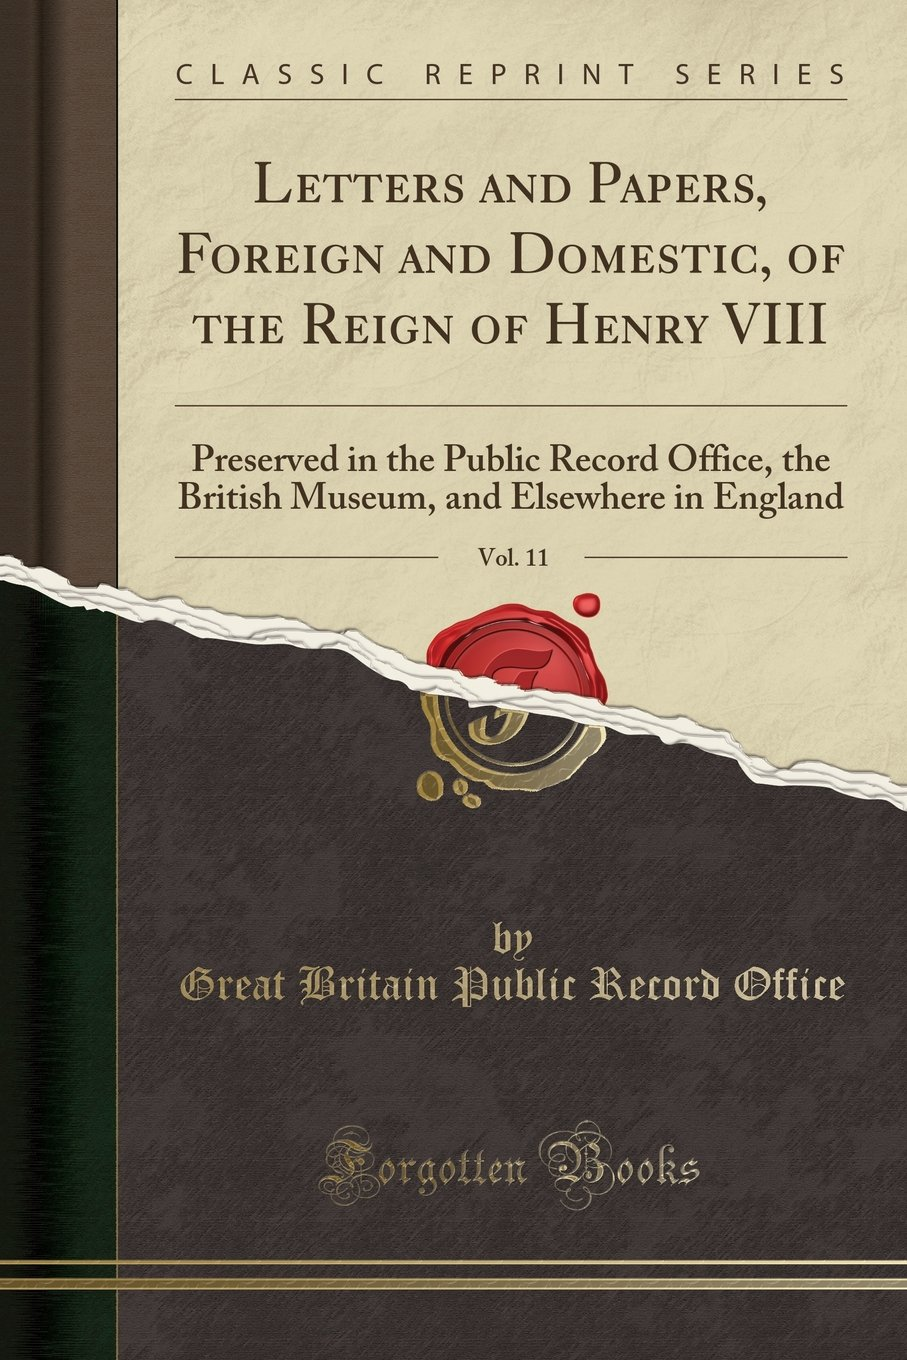 Download Letters and Papers, Foreign and Domestic, of the Reign of Henry VIII, Vol. 11: Preserved in the Public Record Office, the British Museum, and Elsewhere in England (Classic Reprint) pdf